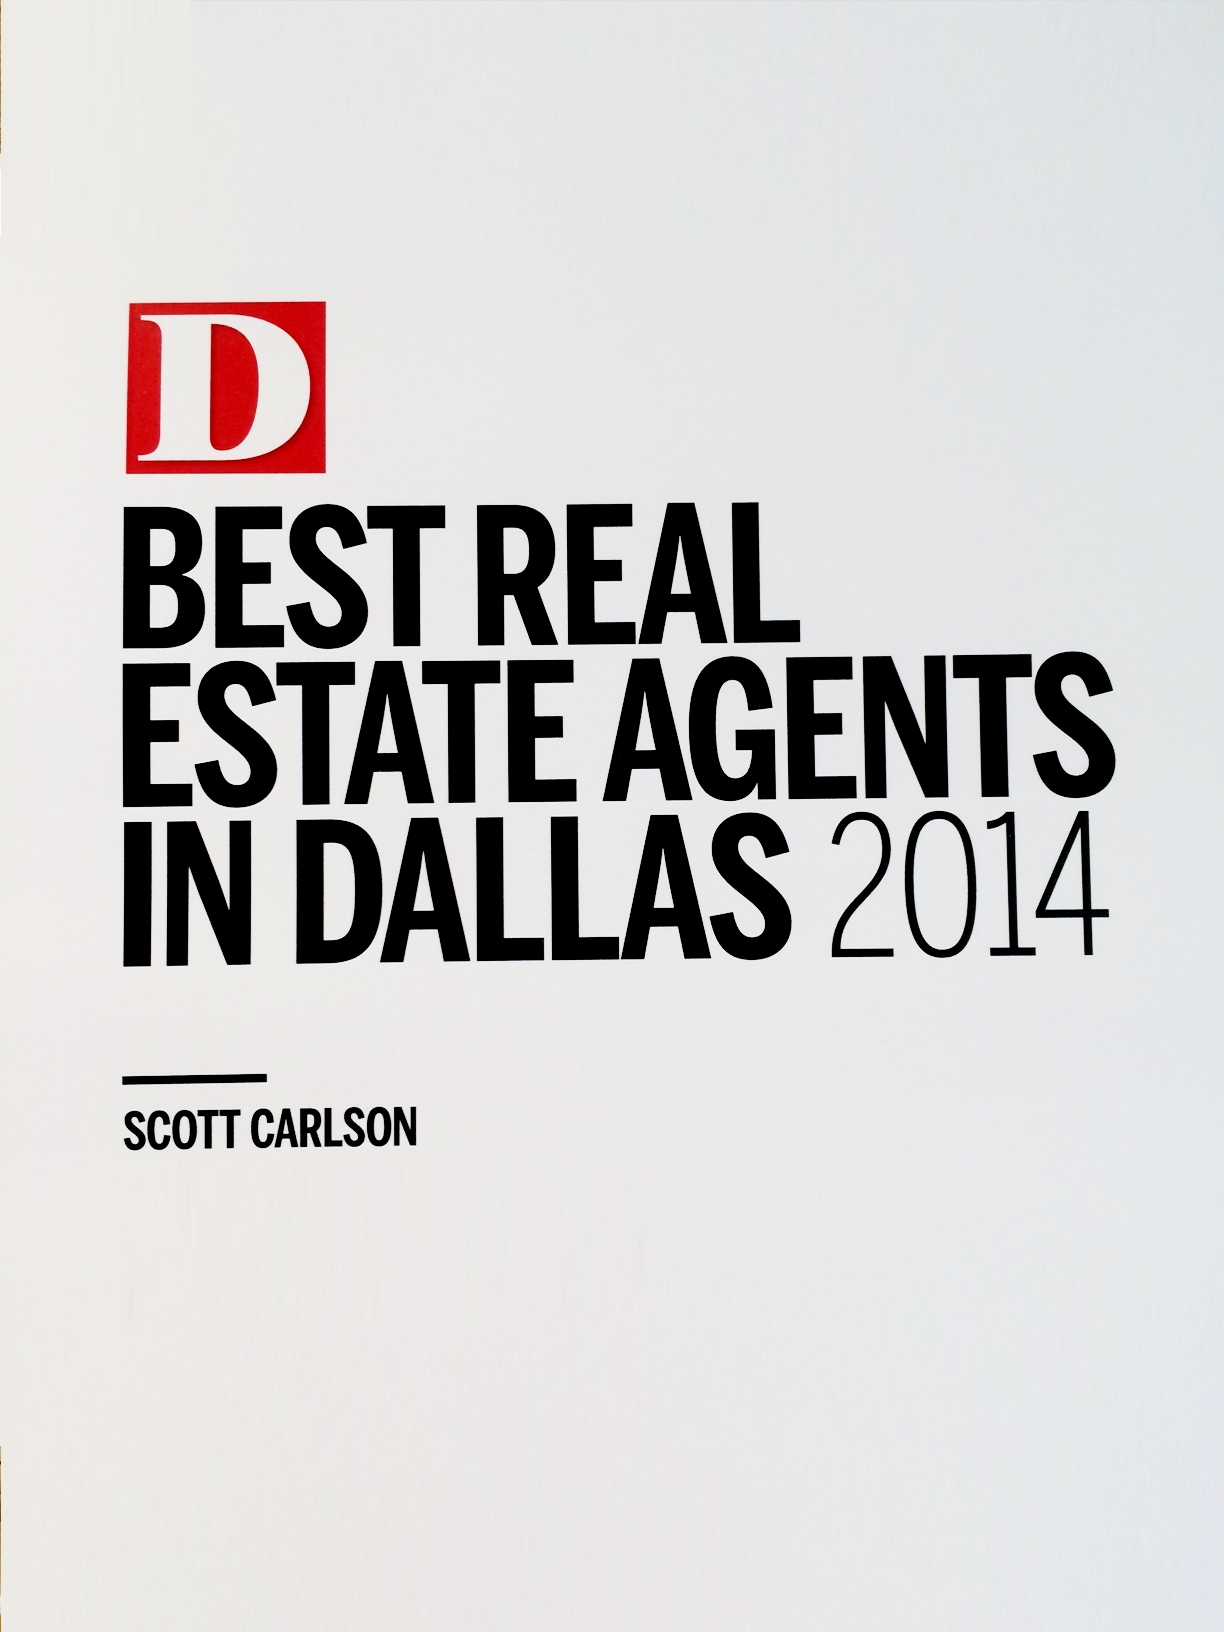 Real estate broker scott carlson dallas realtor scott carlson this year when i opened the envelope and received d best certificate in the mail it got me thinking about my real estate career lakewood and the city aiddatafo Images